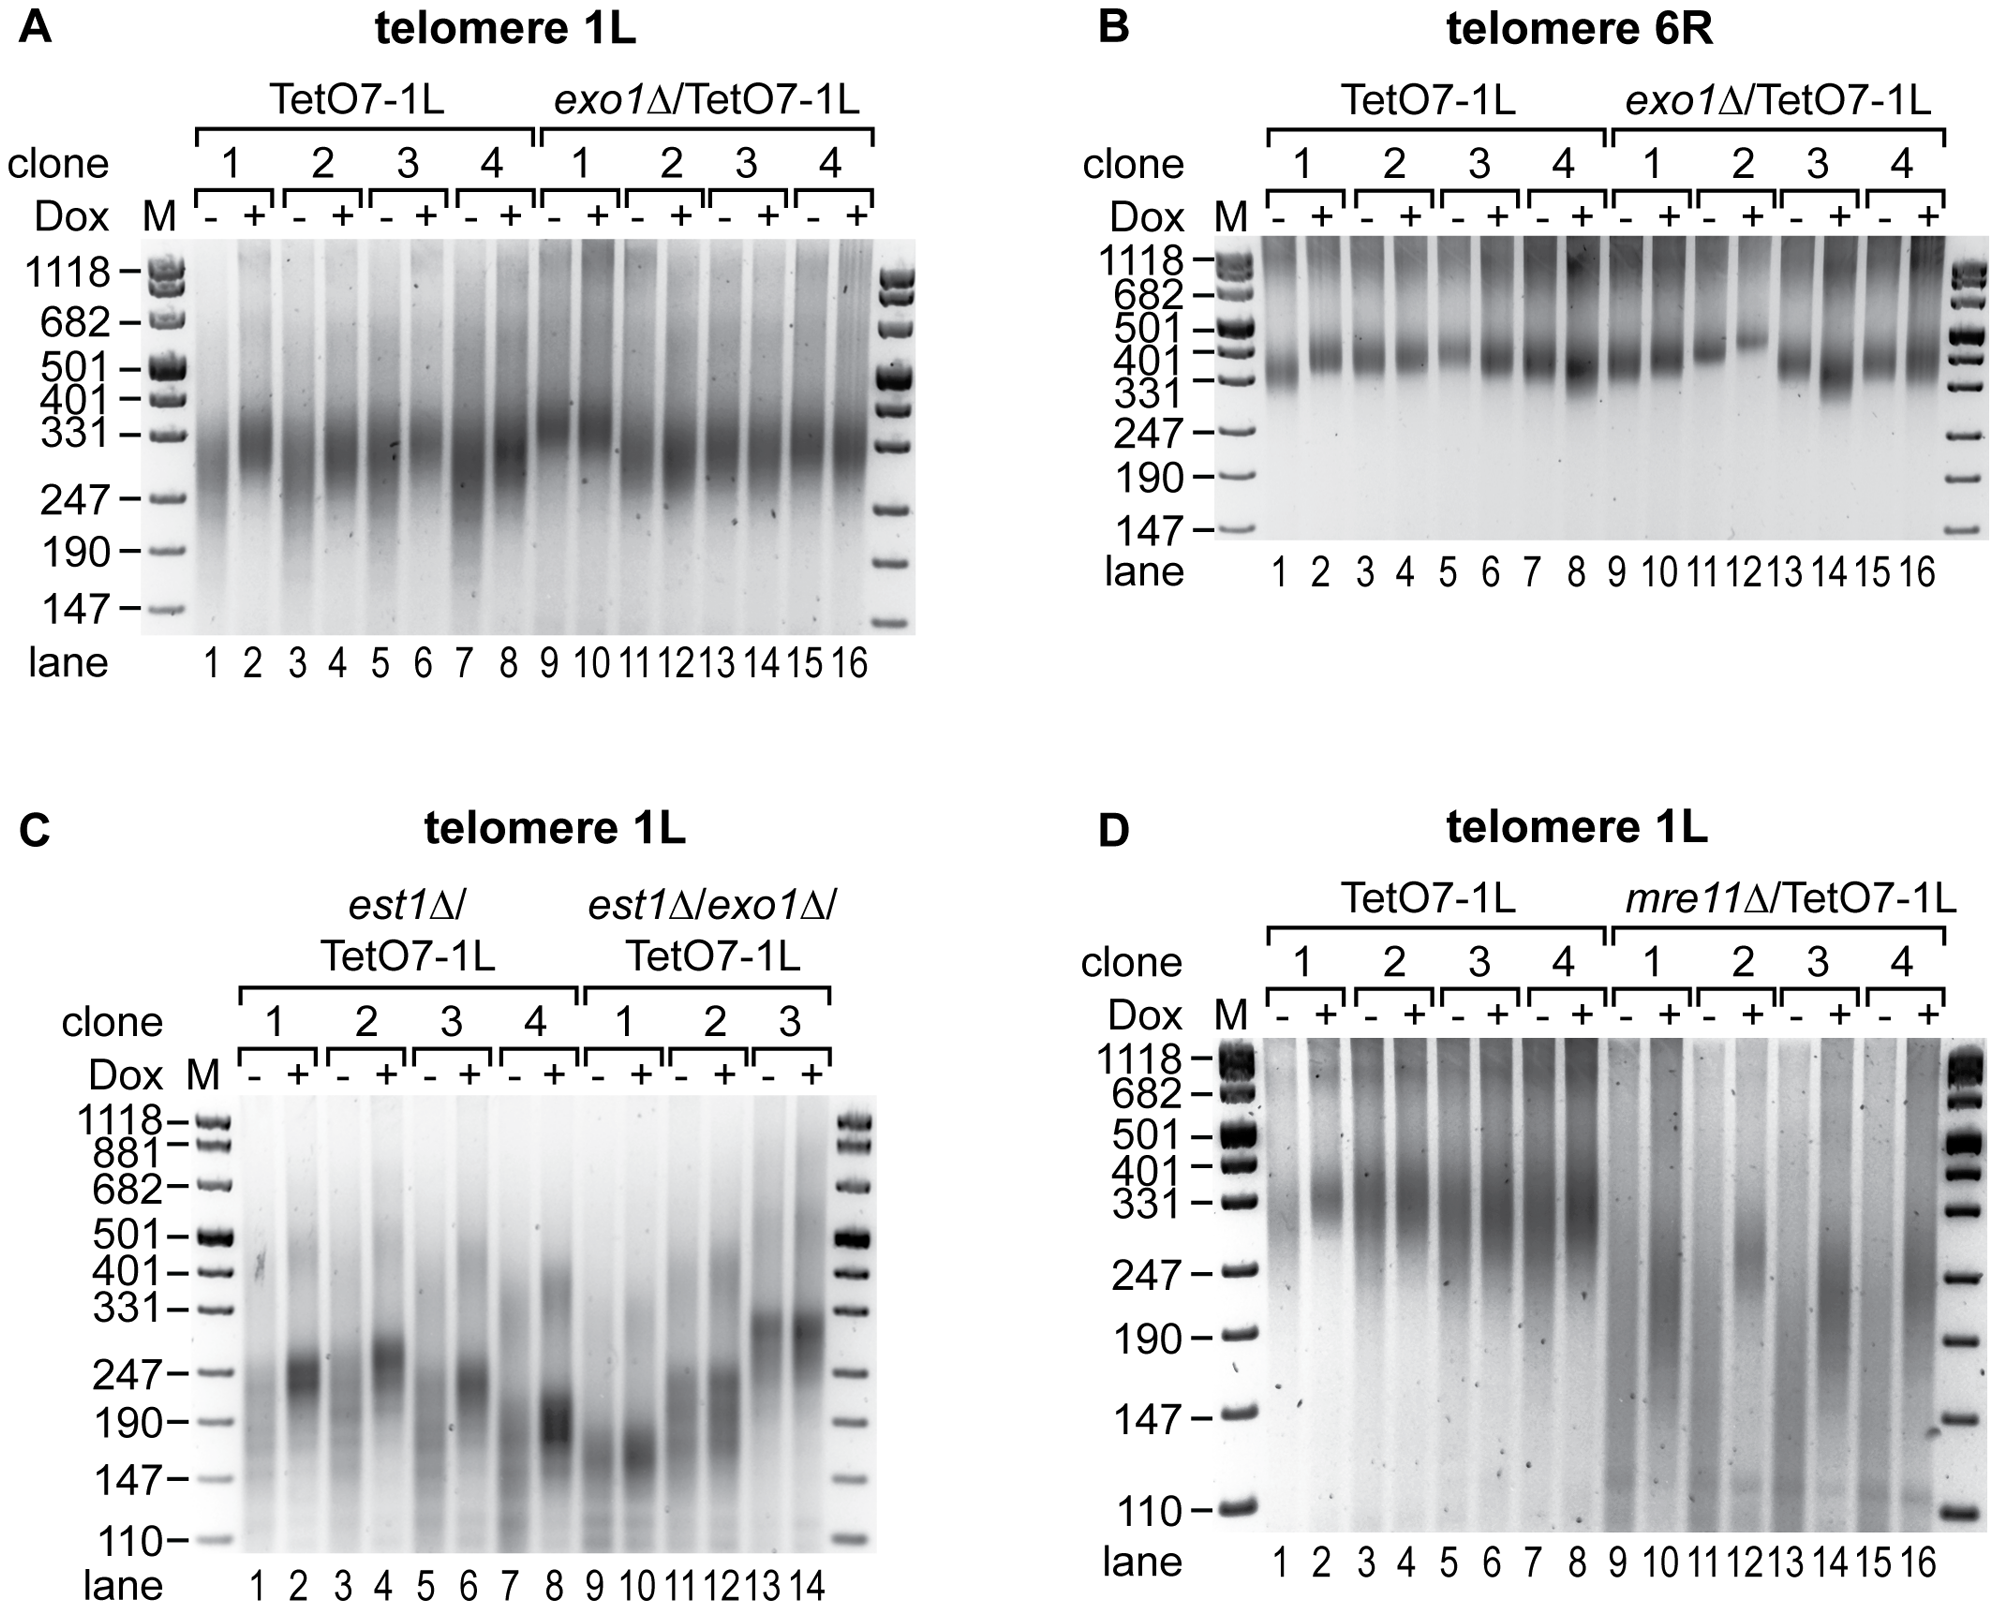 Exo1 mediates shortening of telomere 1L upon 1L TERRA expression, while Mre11 is not involved.